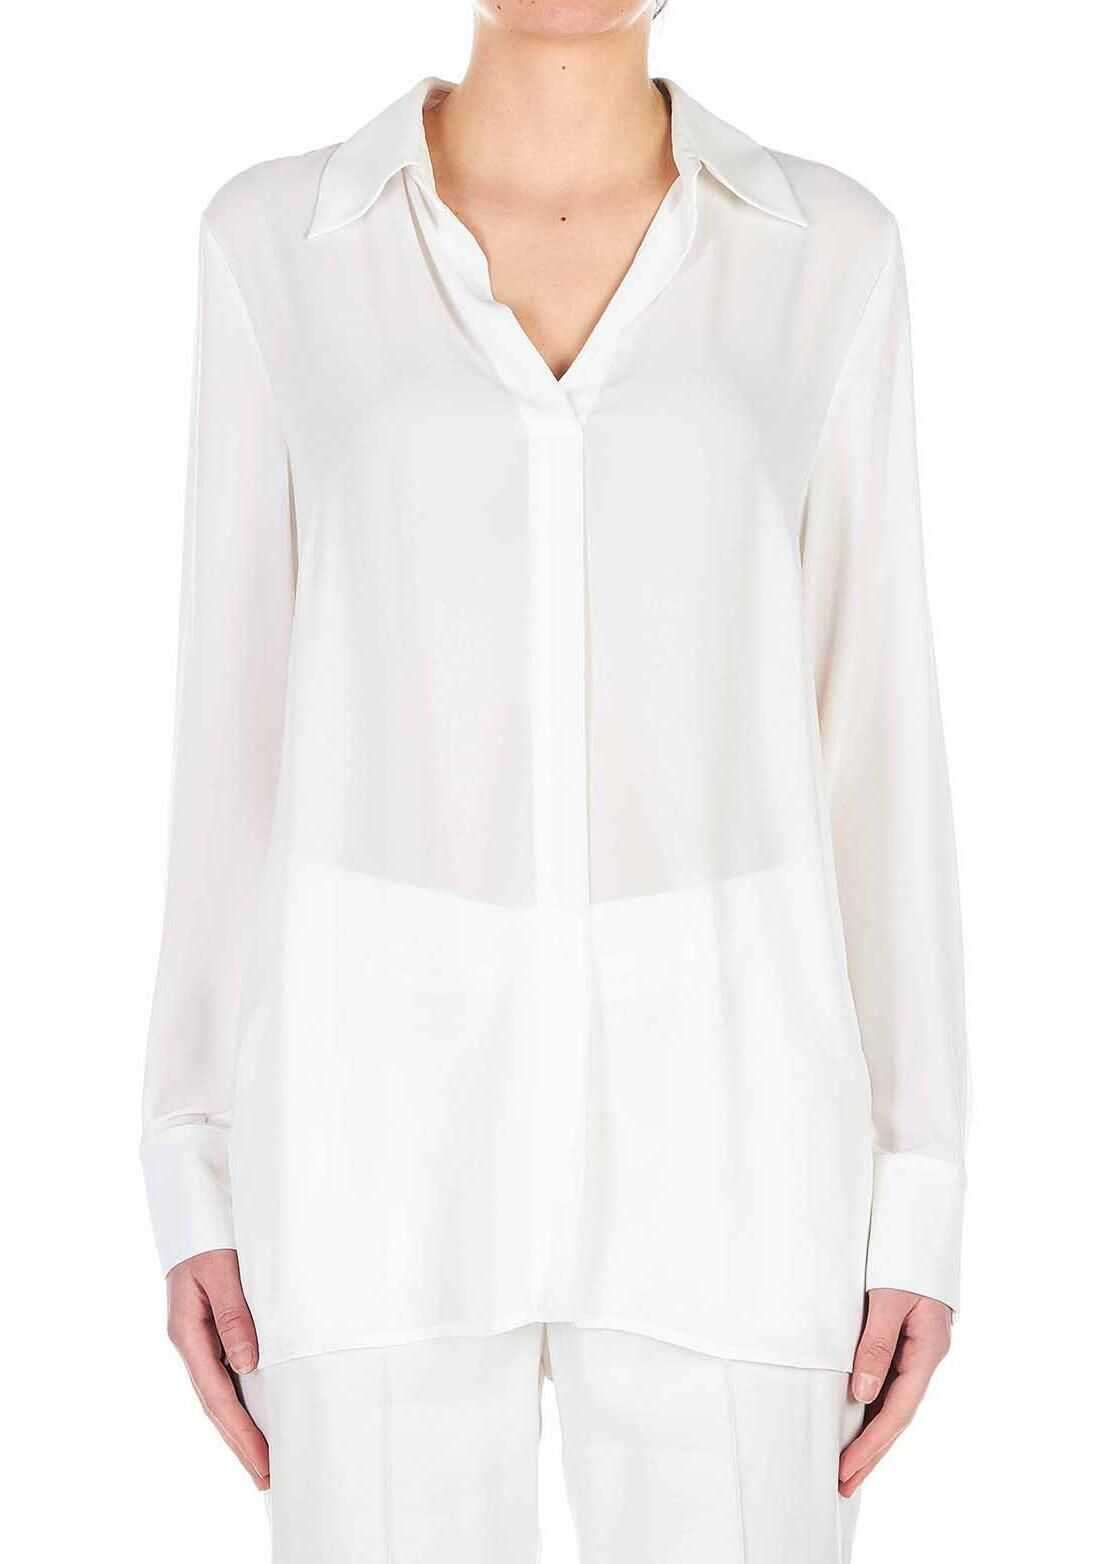 Silvian Heach Blouse with V-neck White